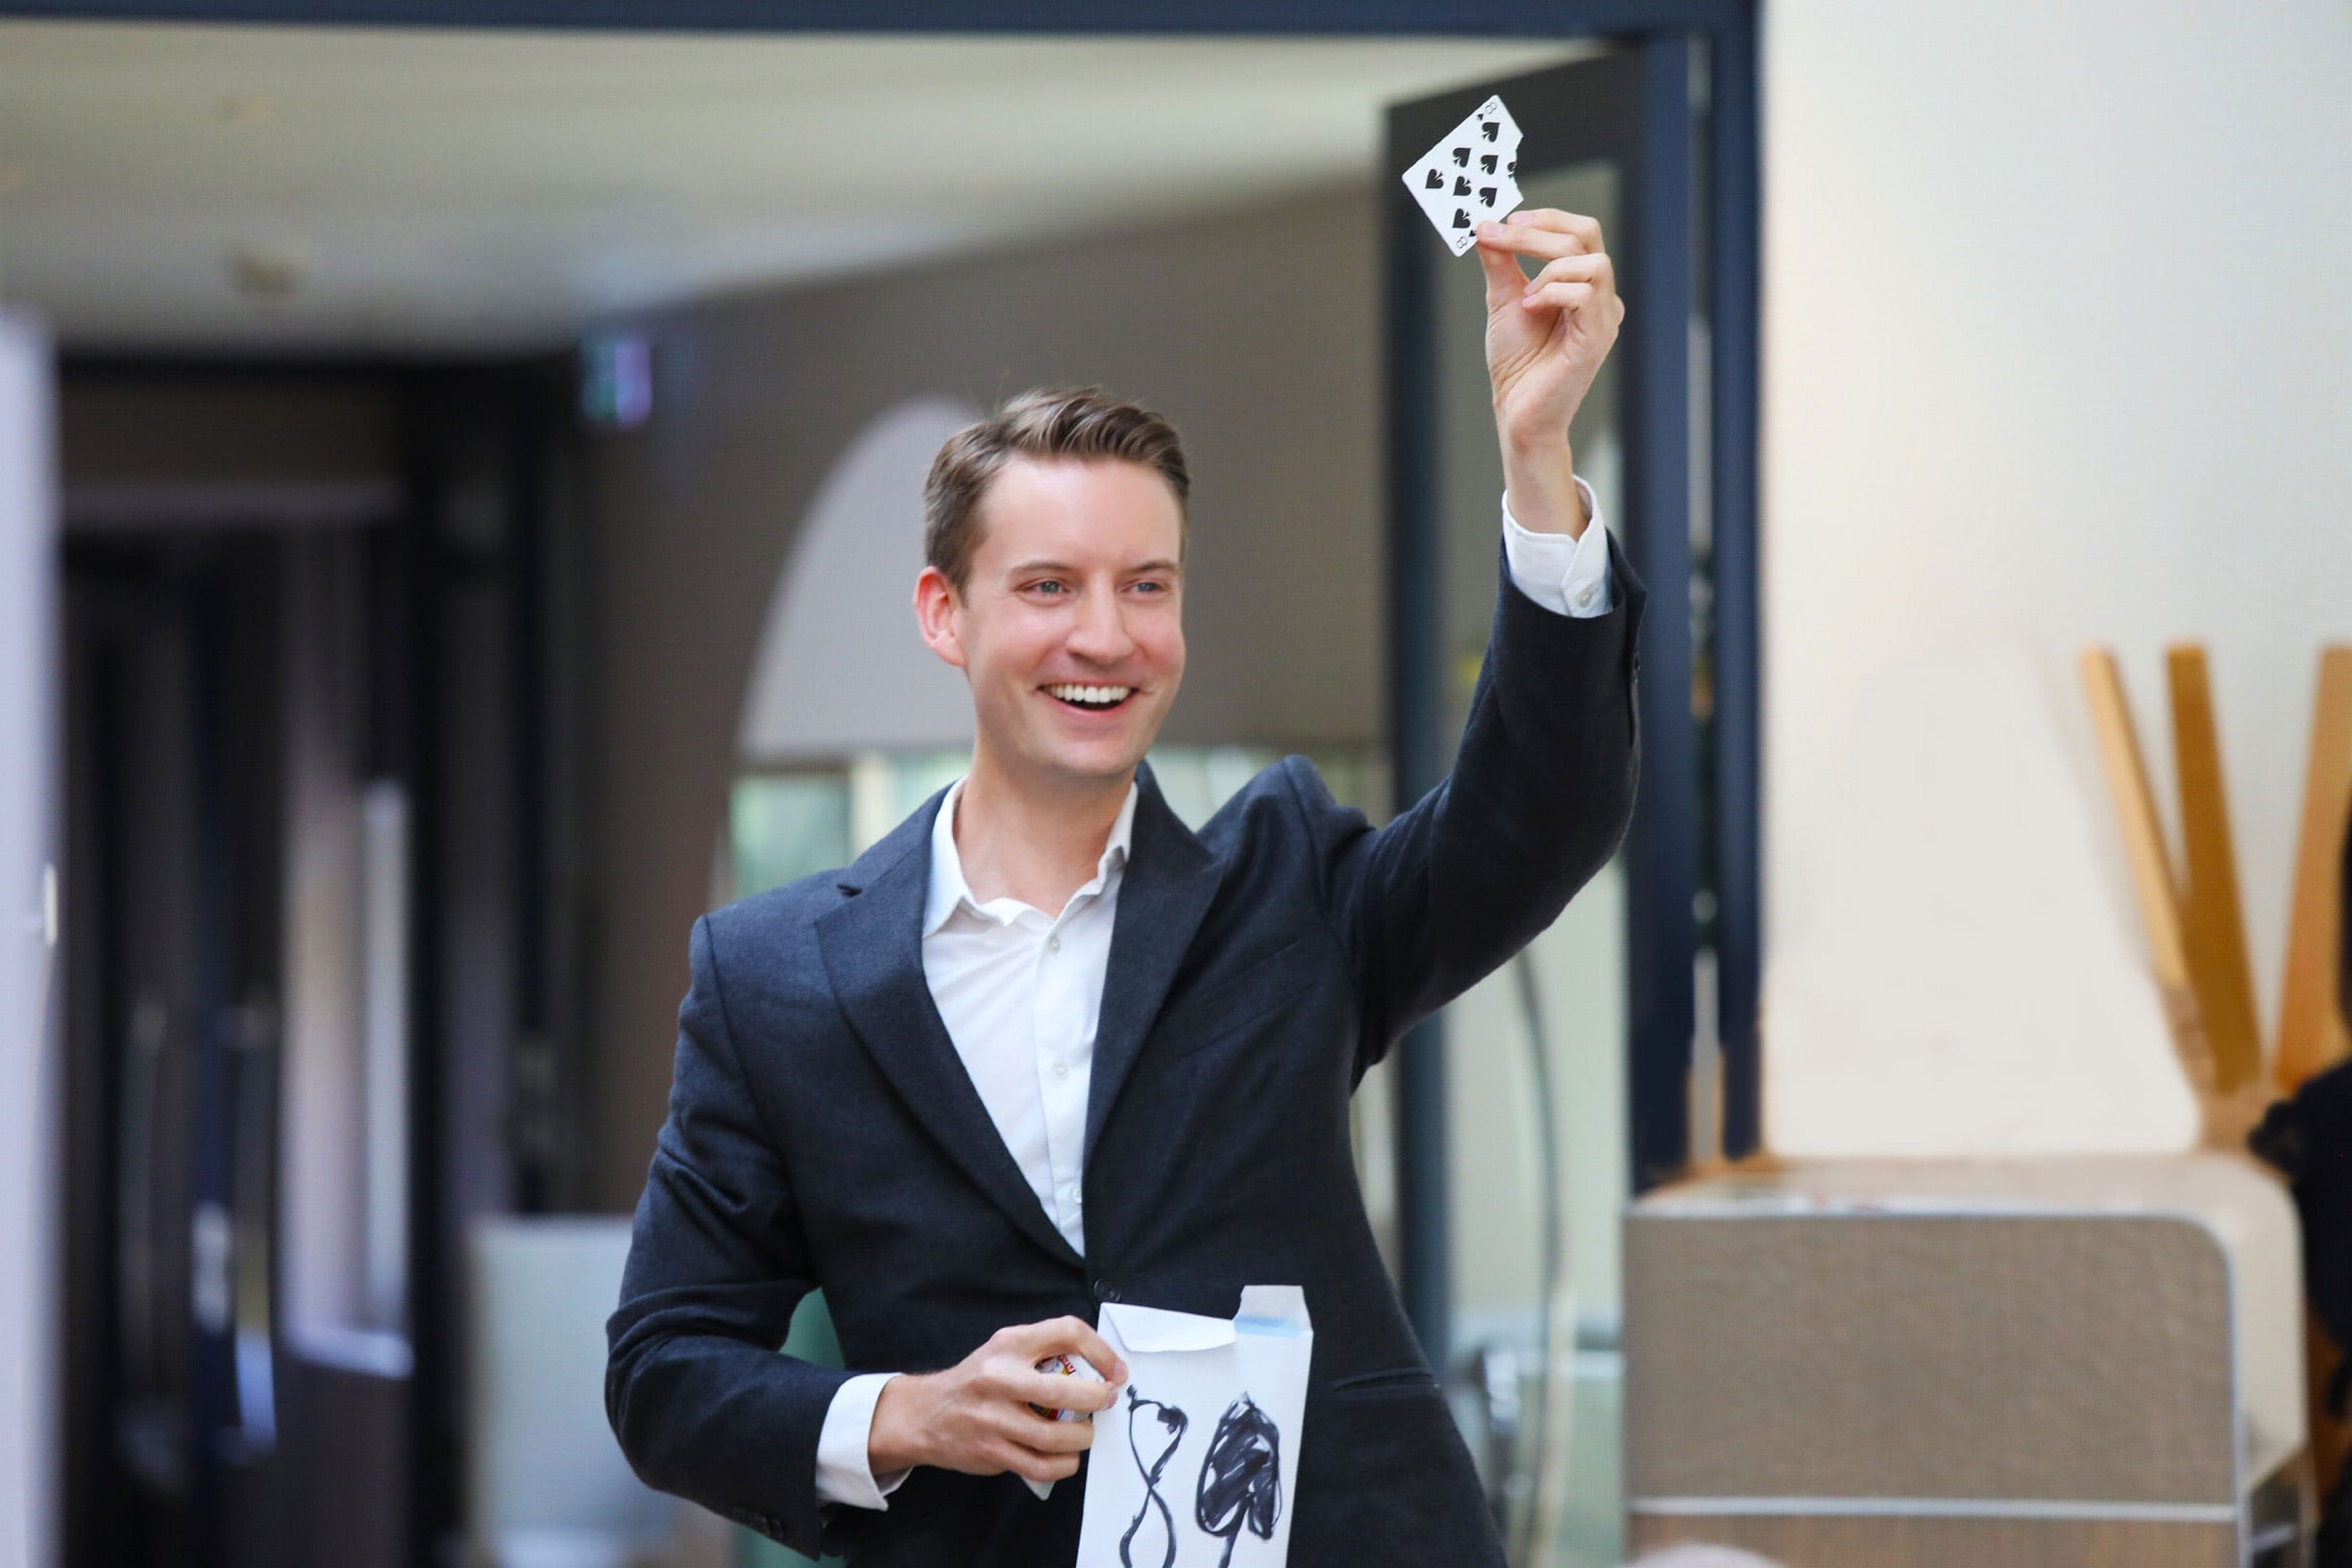 Magic show performance by magician Christopher Howell.